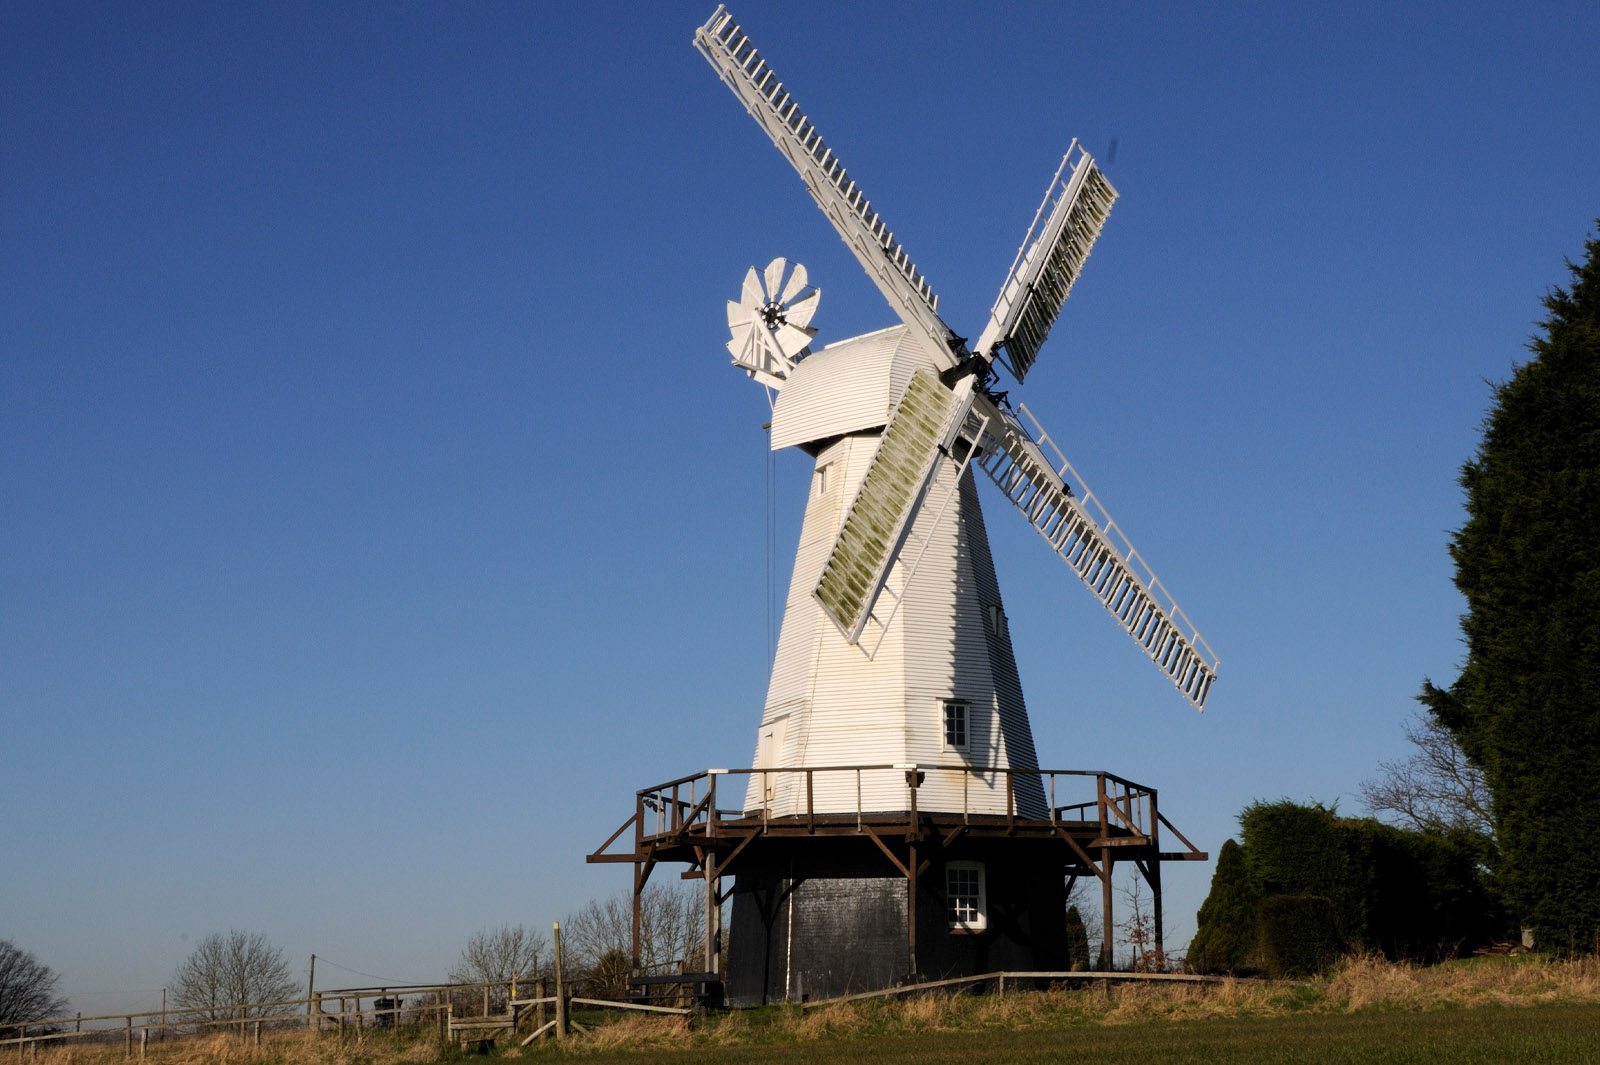 Windmill - photo by Mike Bartlett